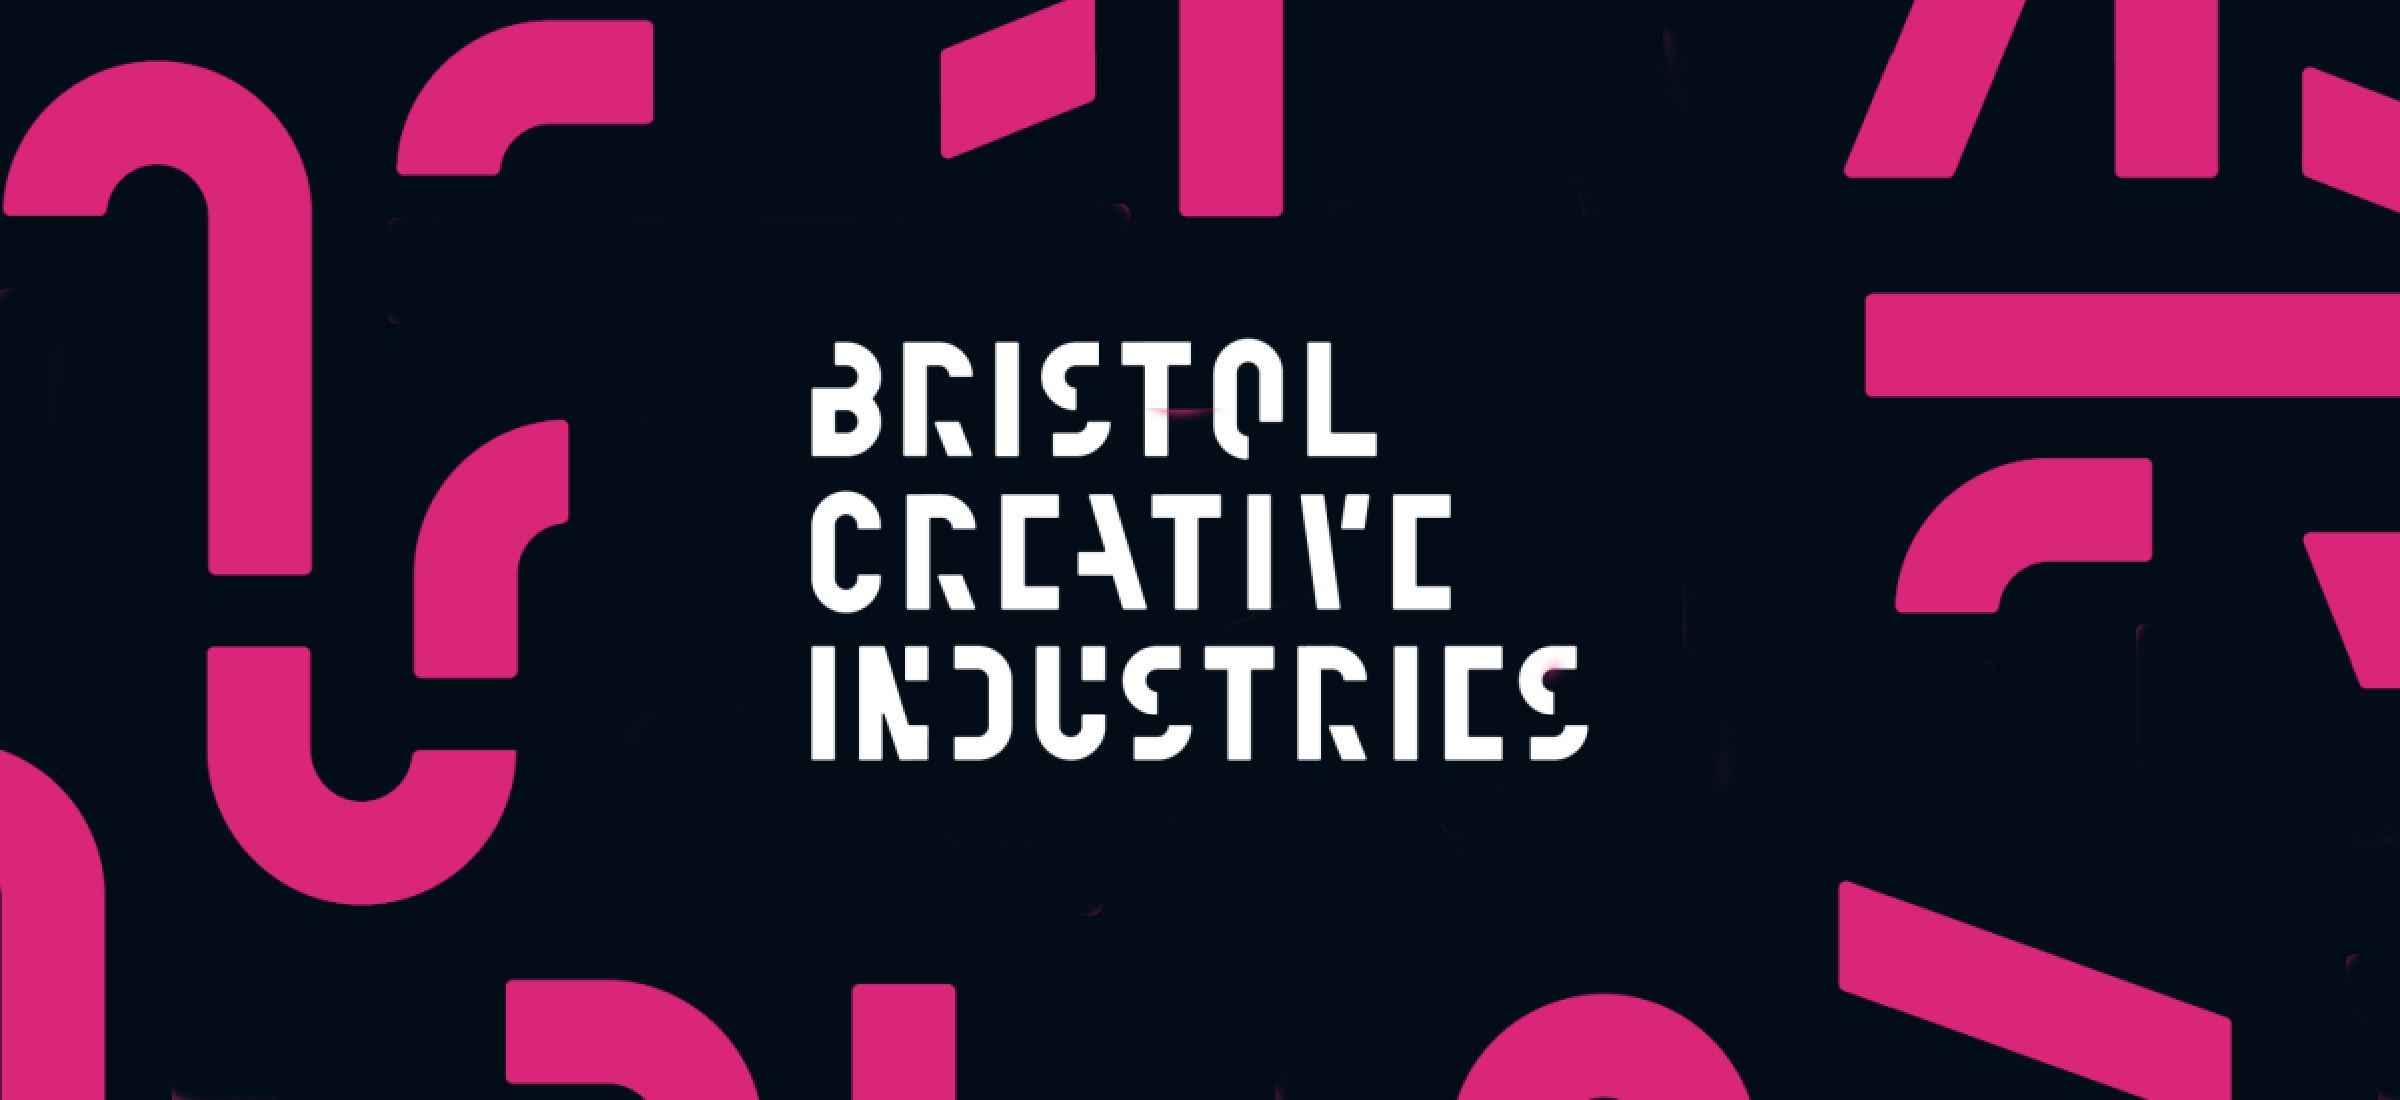 Bristol Creative Industries